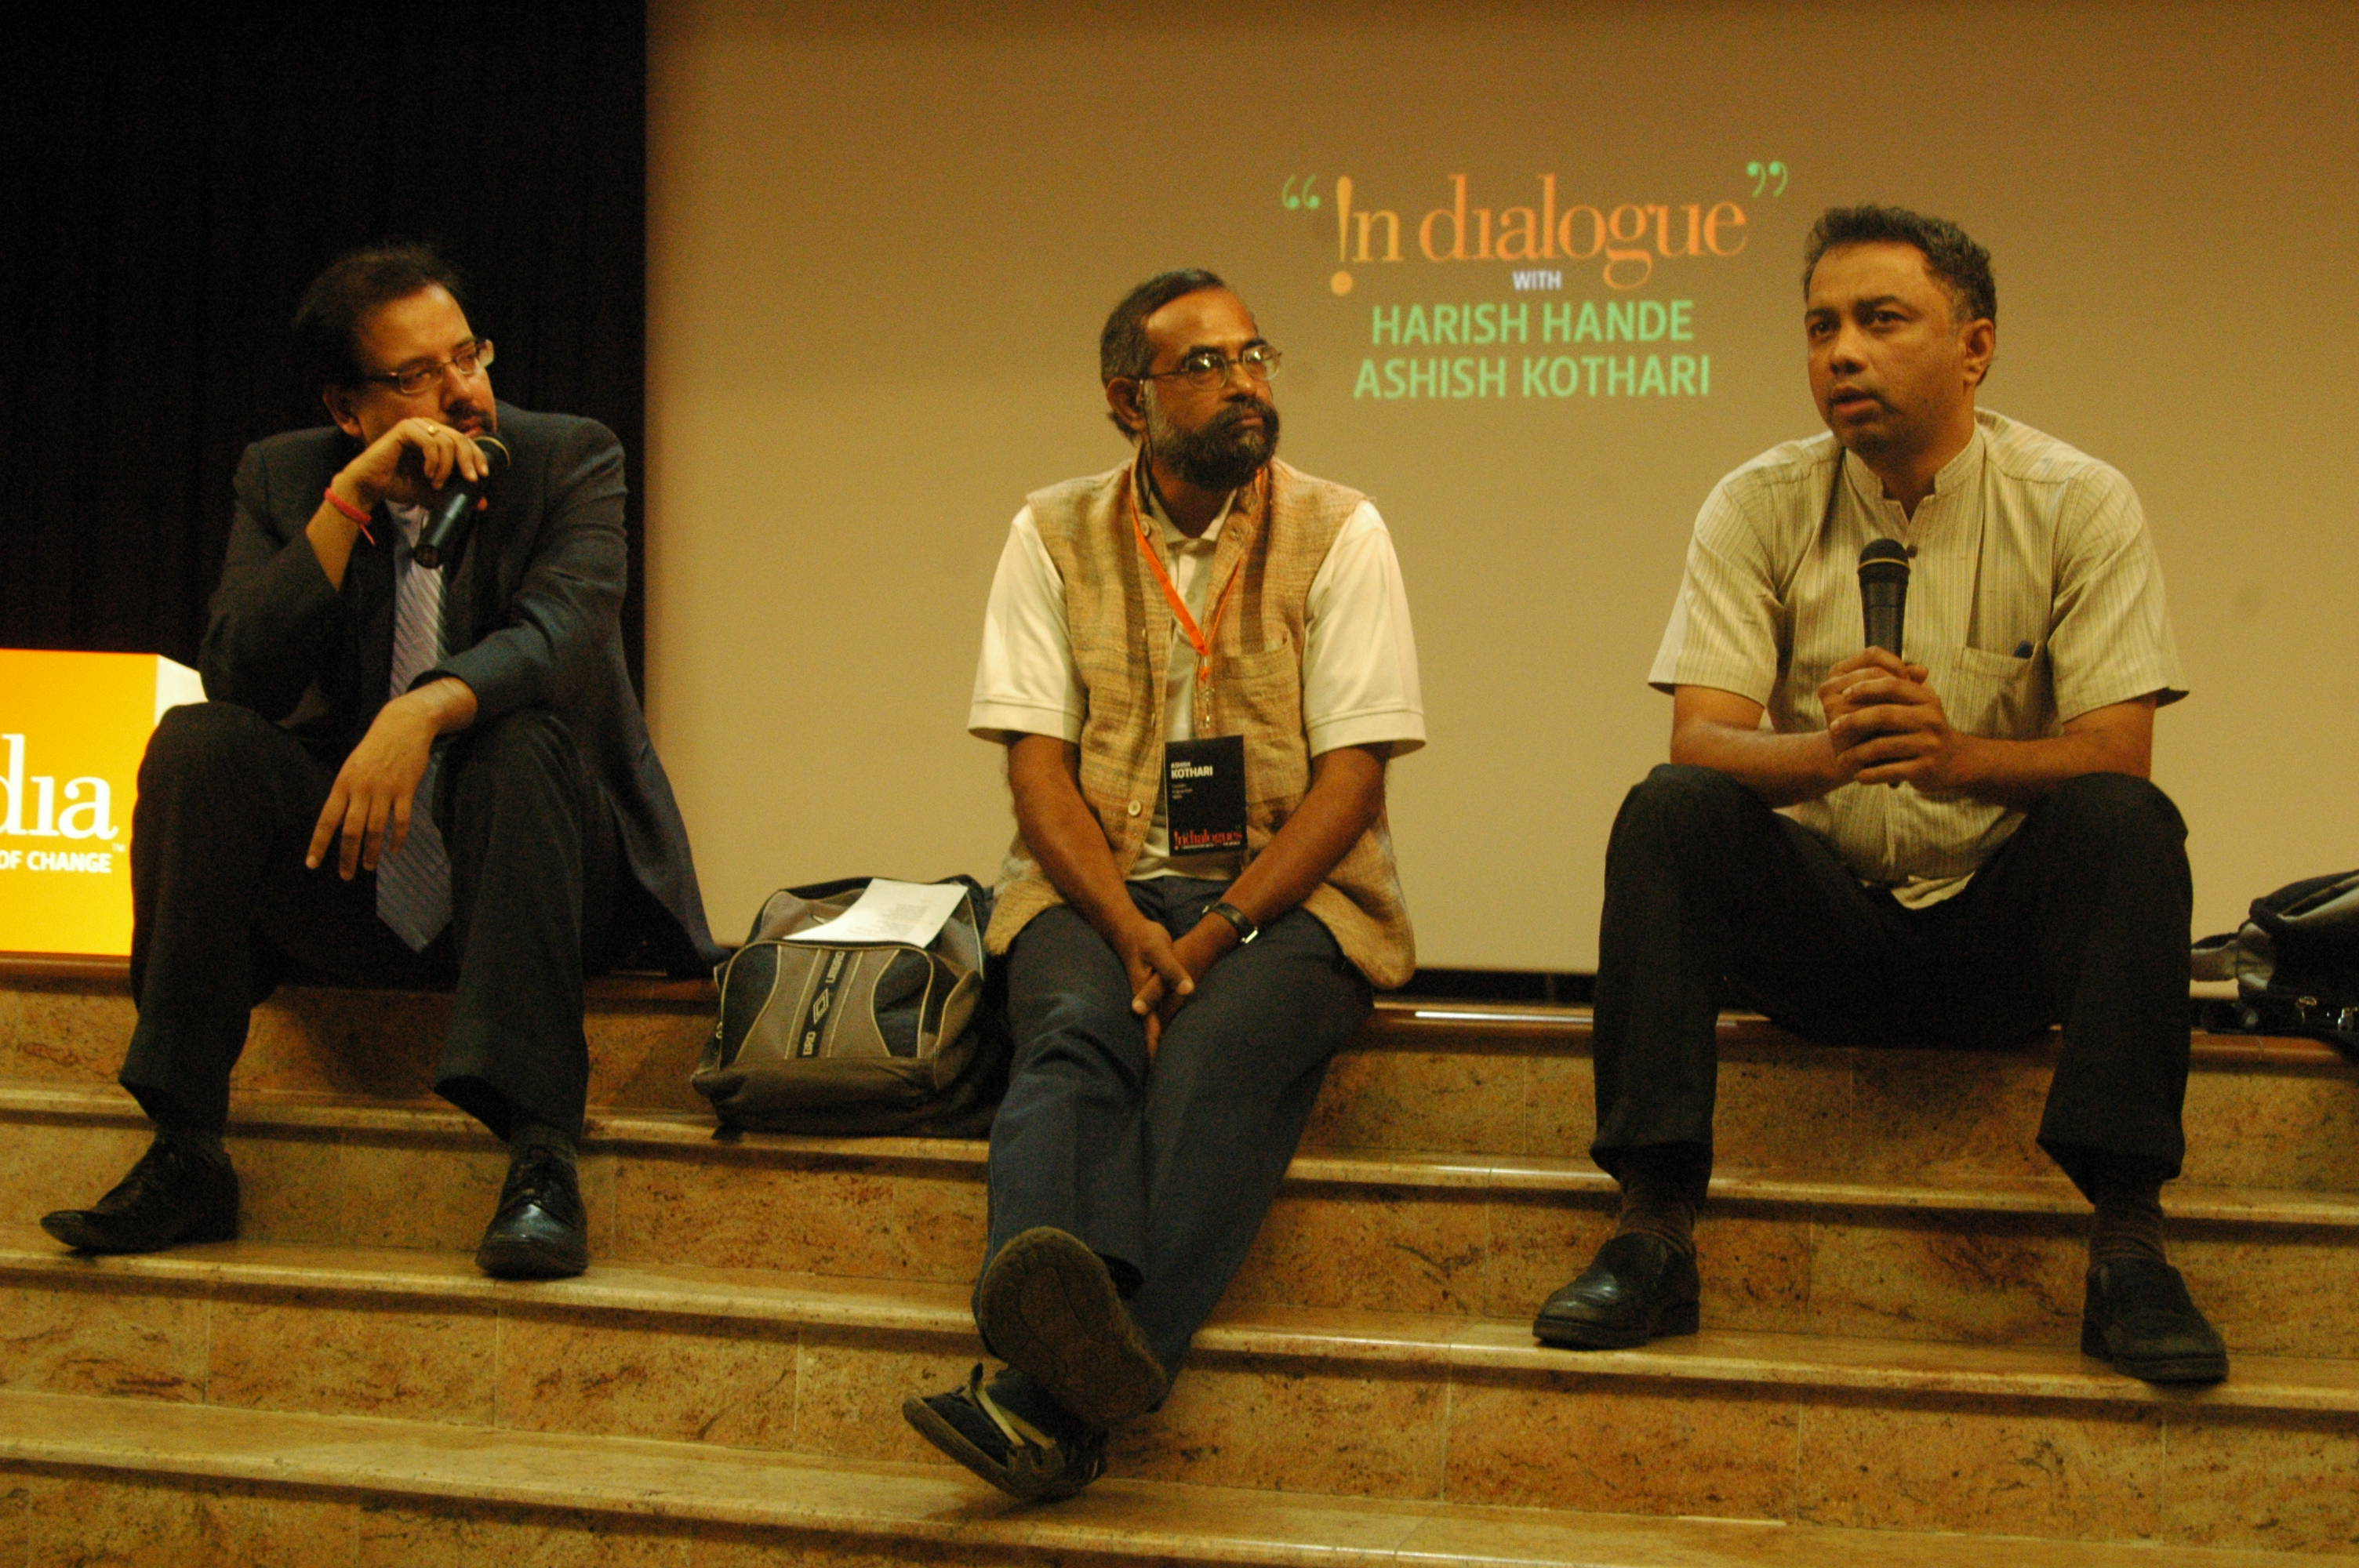 Harish Hande and Ashish Kothari @ Indialogues